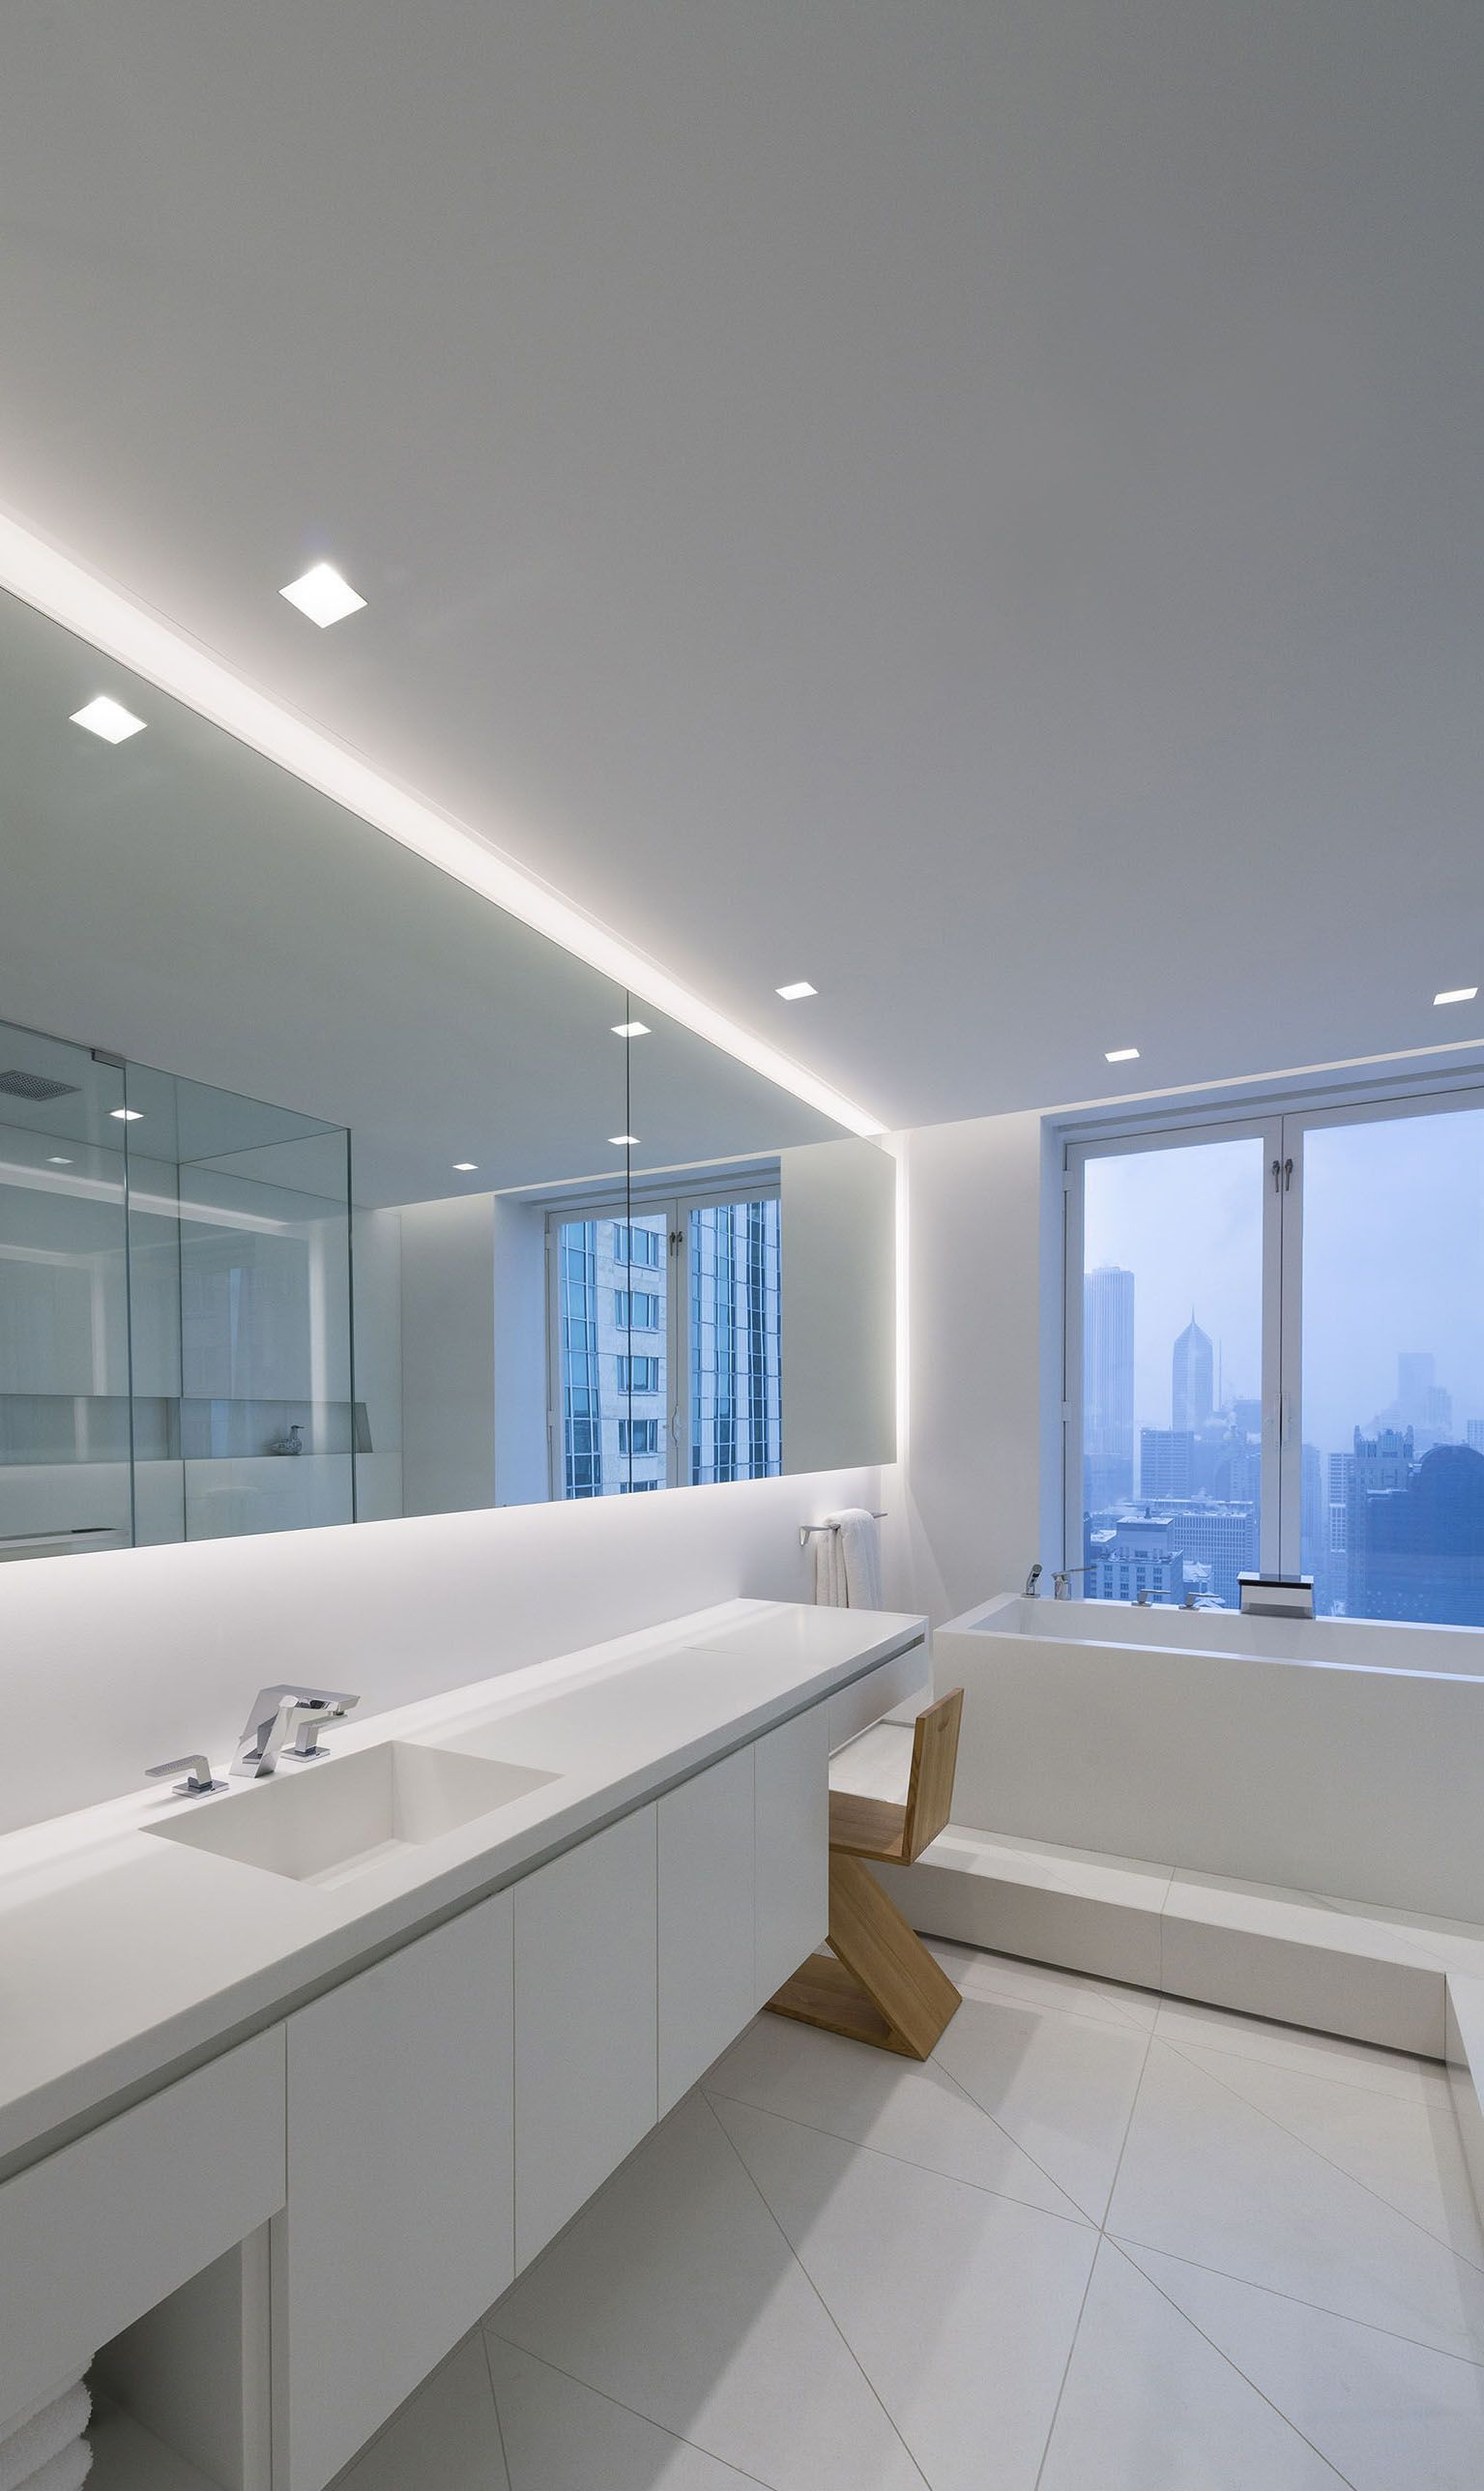 A Lighting Idea For Contempporary Bathrooms | Modern LED Lighting For The  Bathroom | Aurora Square